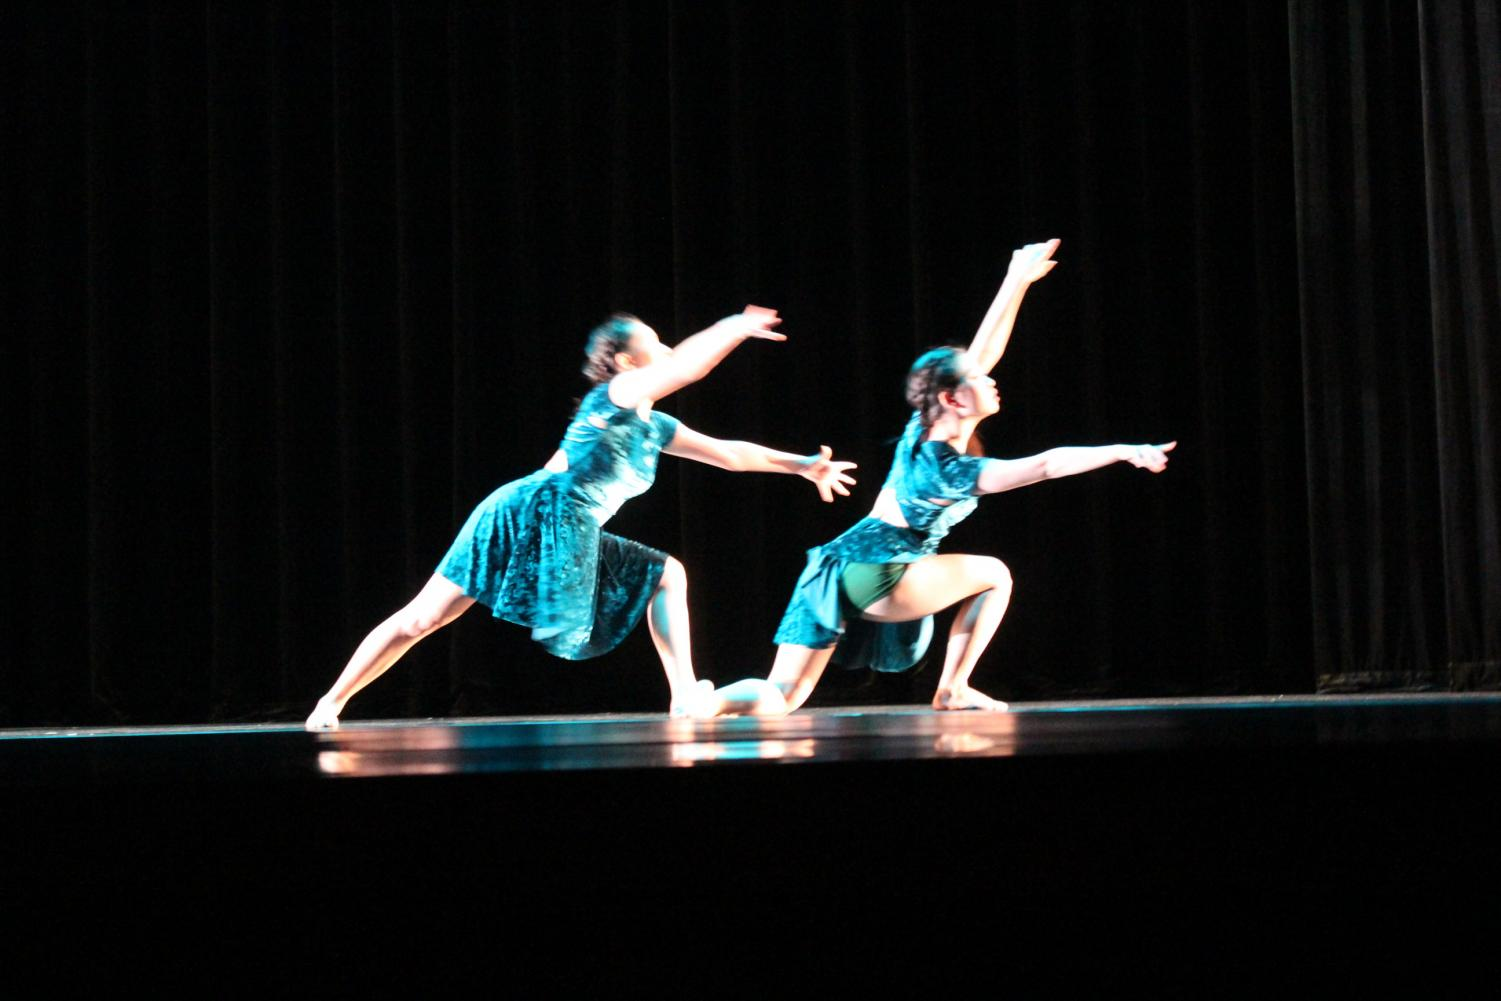 Georgie Casaletto, Isabella Fontane, Elena Rouse, Sophia Shin perform to the dance Catharsis. This piece was choreographed by Isabella Fontane.